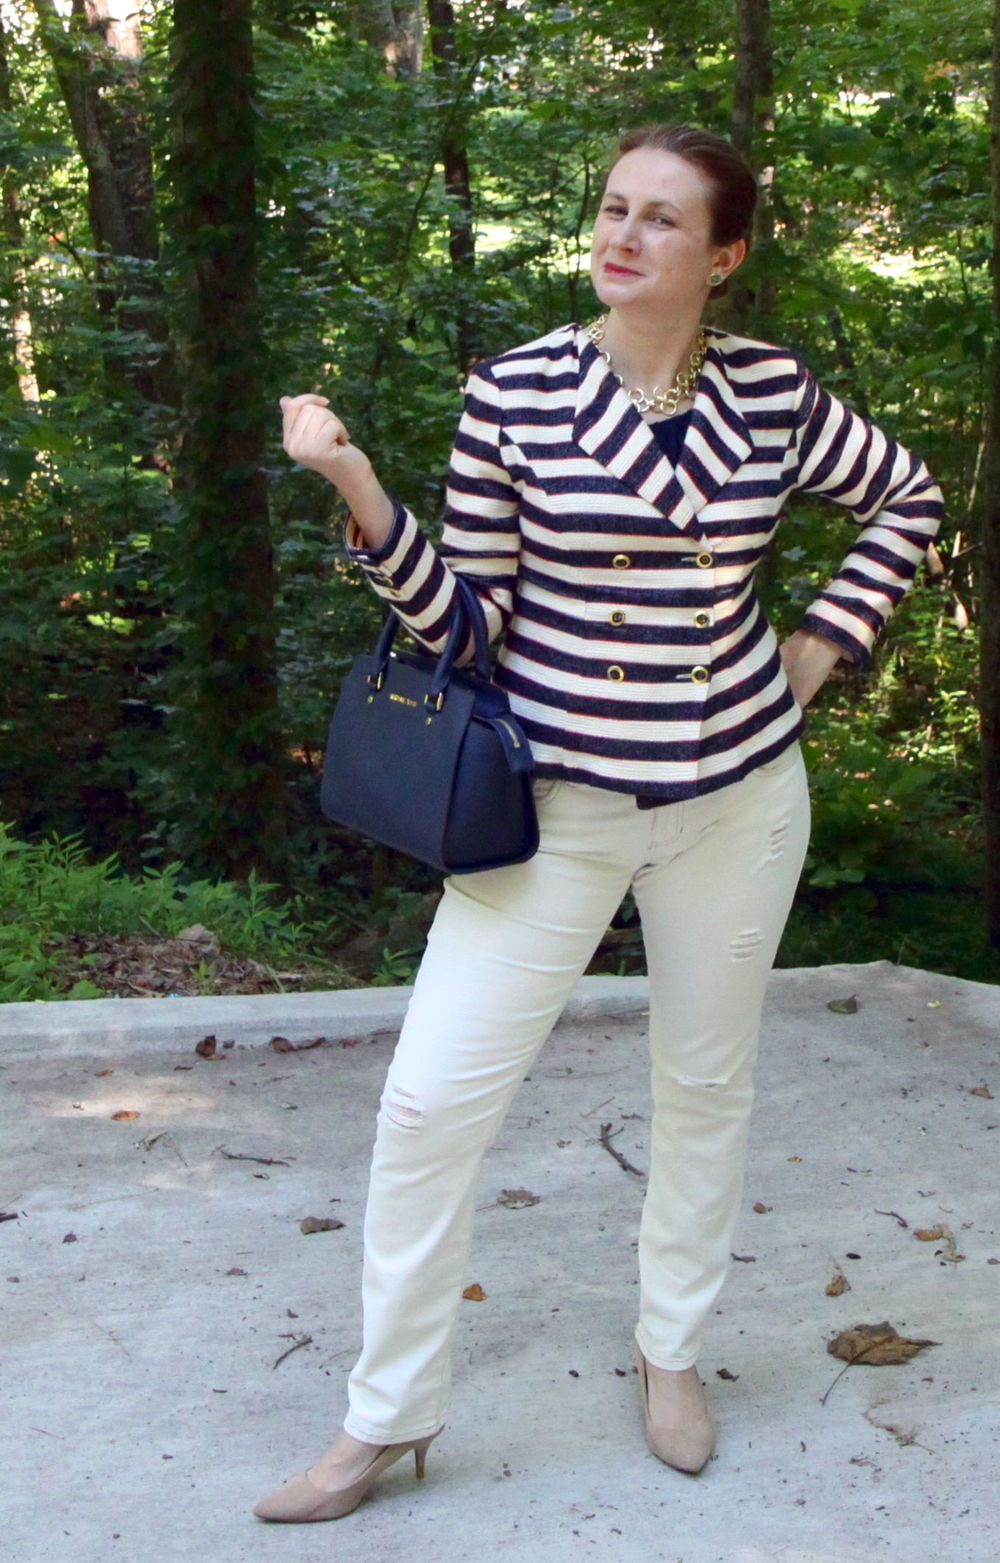 The red here is very subtle--in the stripes. I could also add a red shoe for added fun.  Outfit:  CRUISE JACKET  ,   Destructed Slim Boyfriend    jeans from cabi Spring 2016, Fifth Avenue Tee past season cabi, Older Target shoes, Michael Kors,  Selma Medium Satchel,  Stella & Dot necklace, Sloan Ranger Knot Earrings.